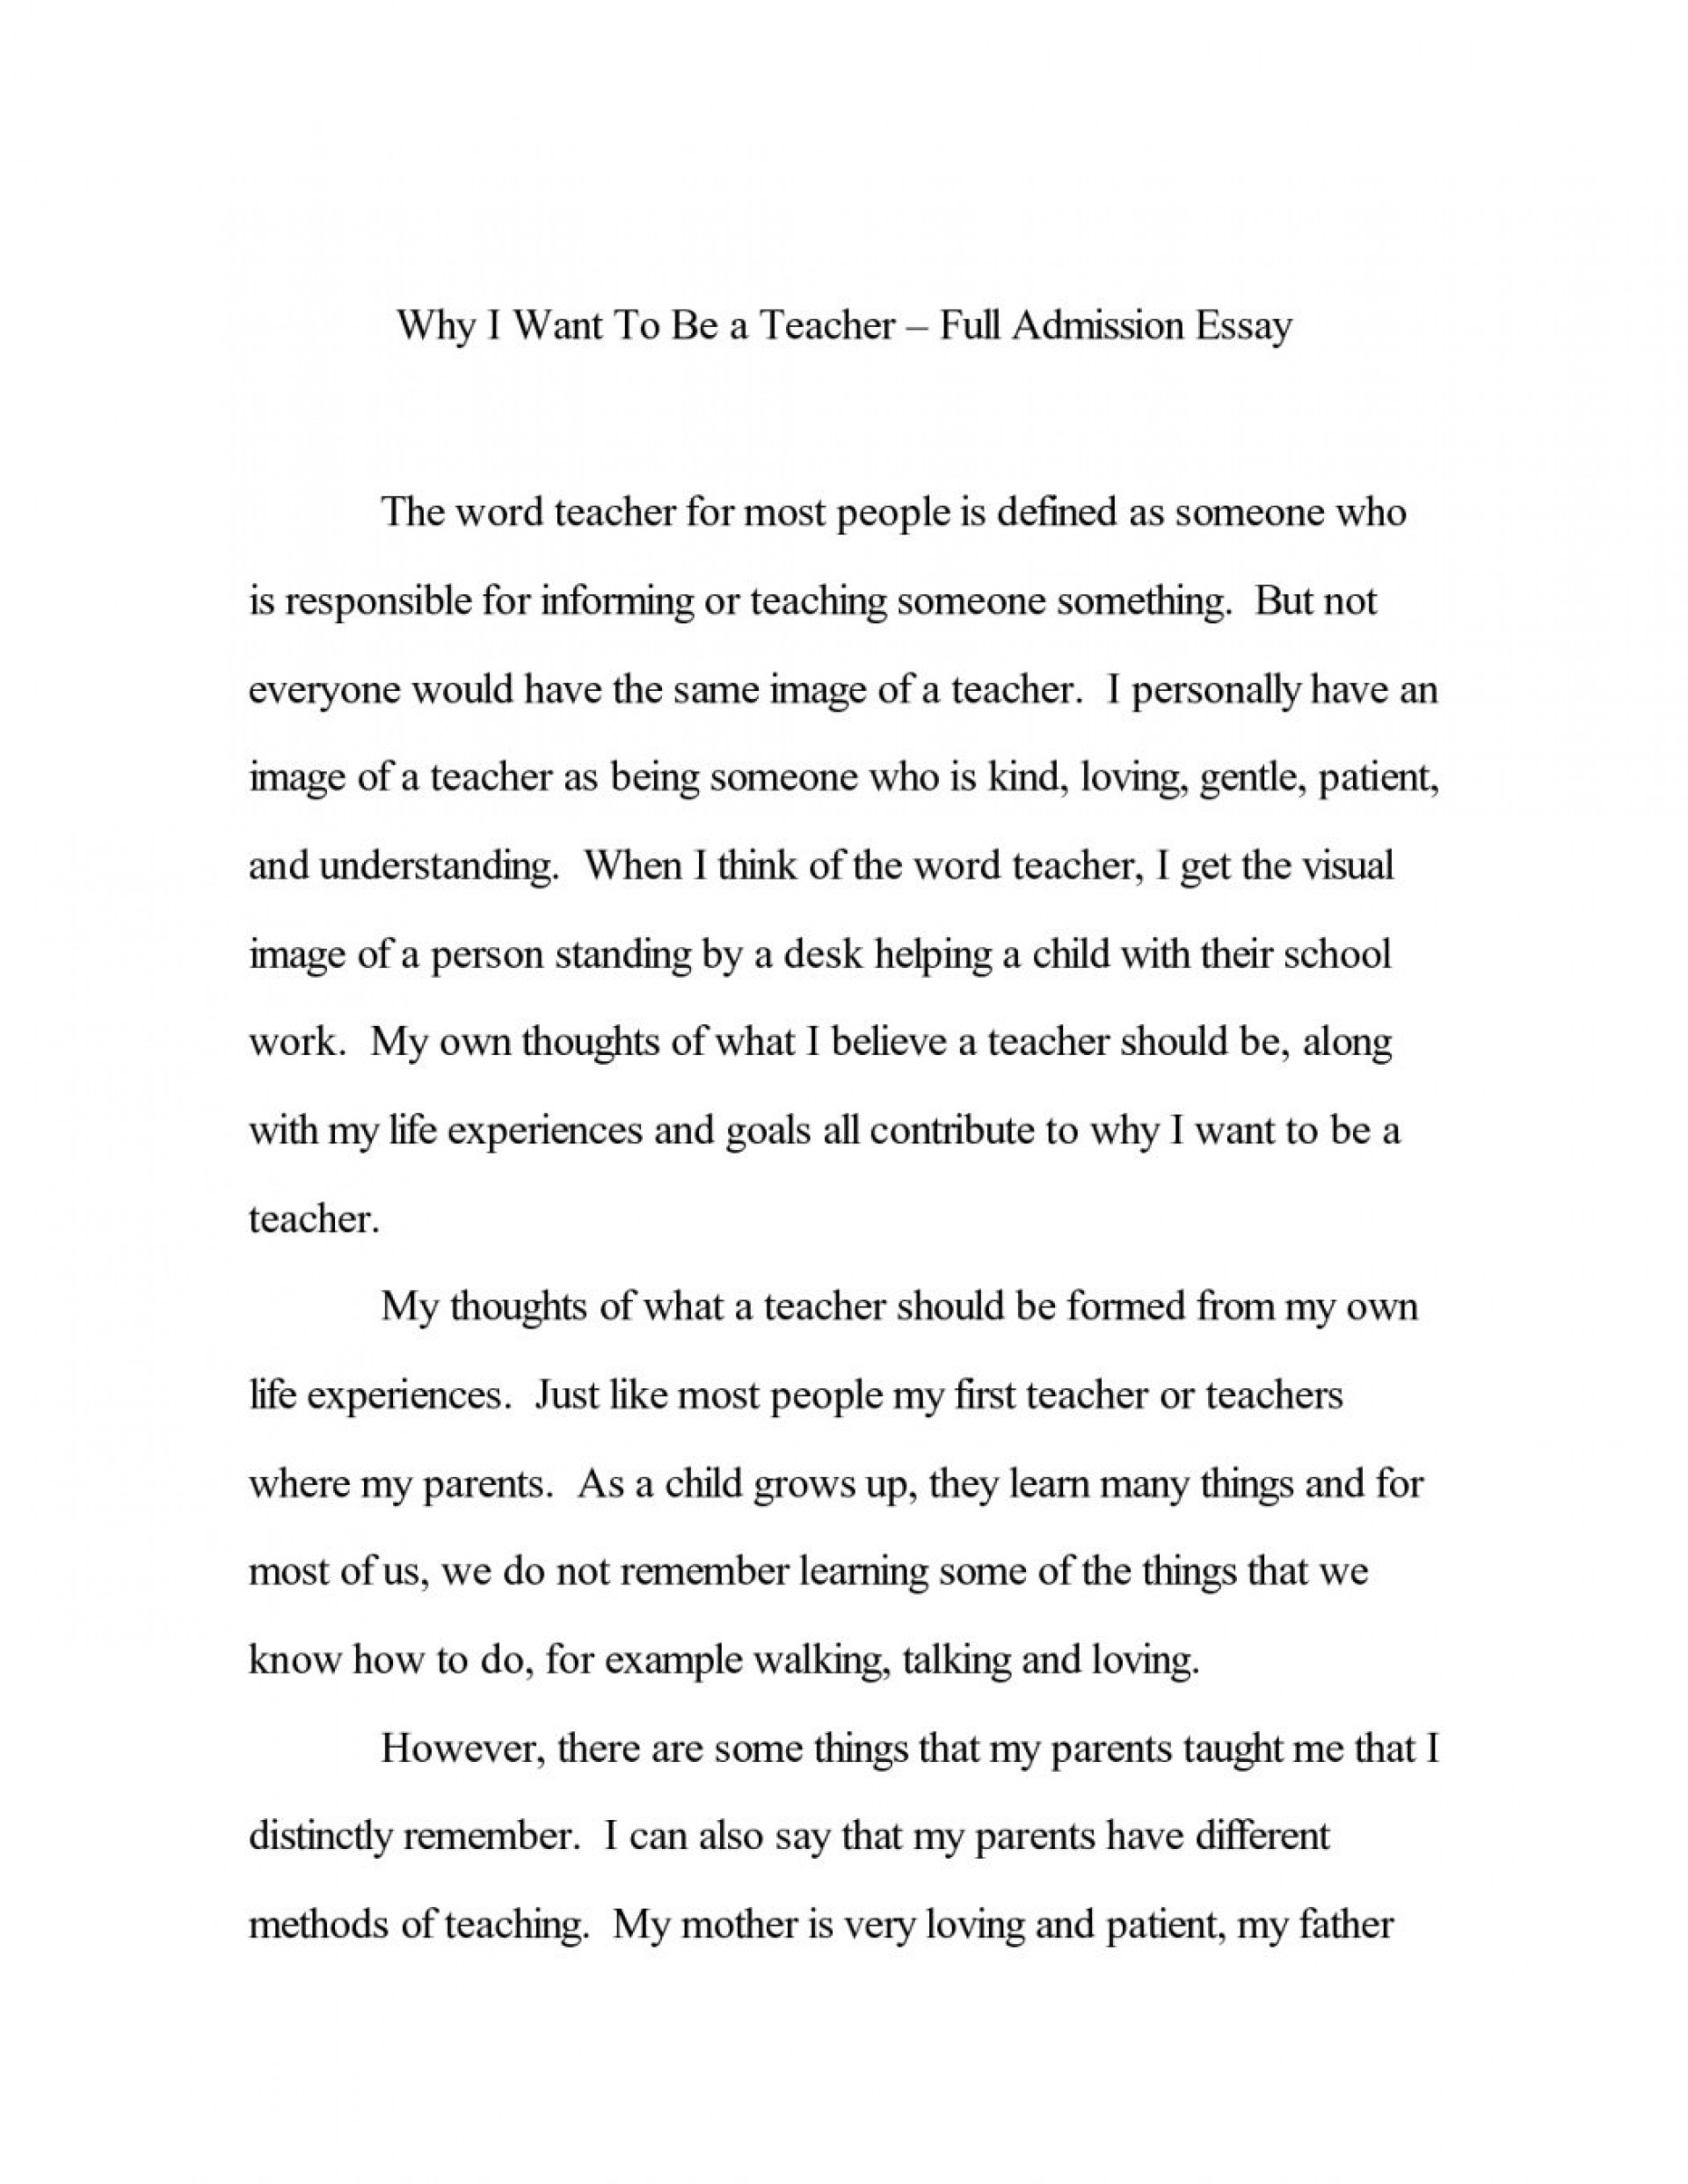 006 College Application Essays Format Cover Letter And Tips Personal Statement Ideal Vistalist Co Inten Writing 1048x1356 Beautiful Essay Admission Common App Confidential 1920